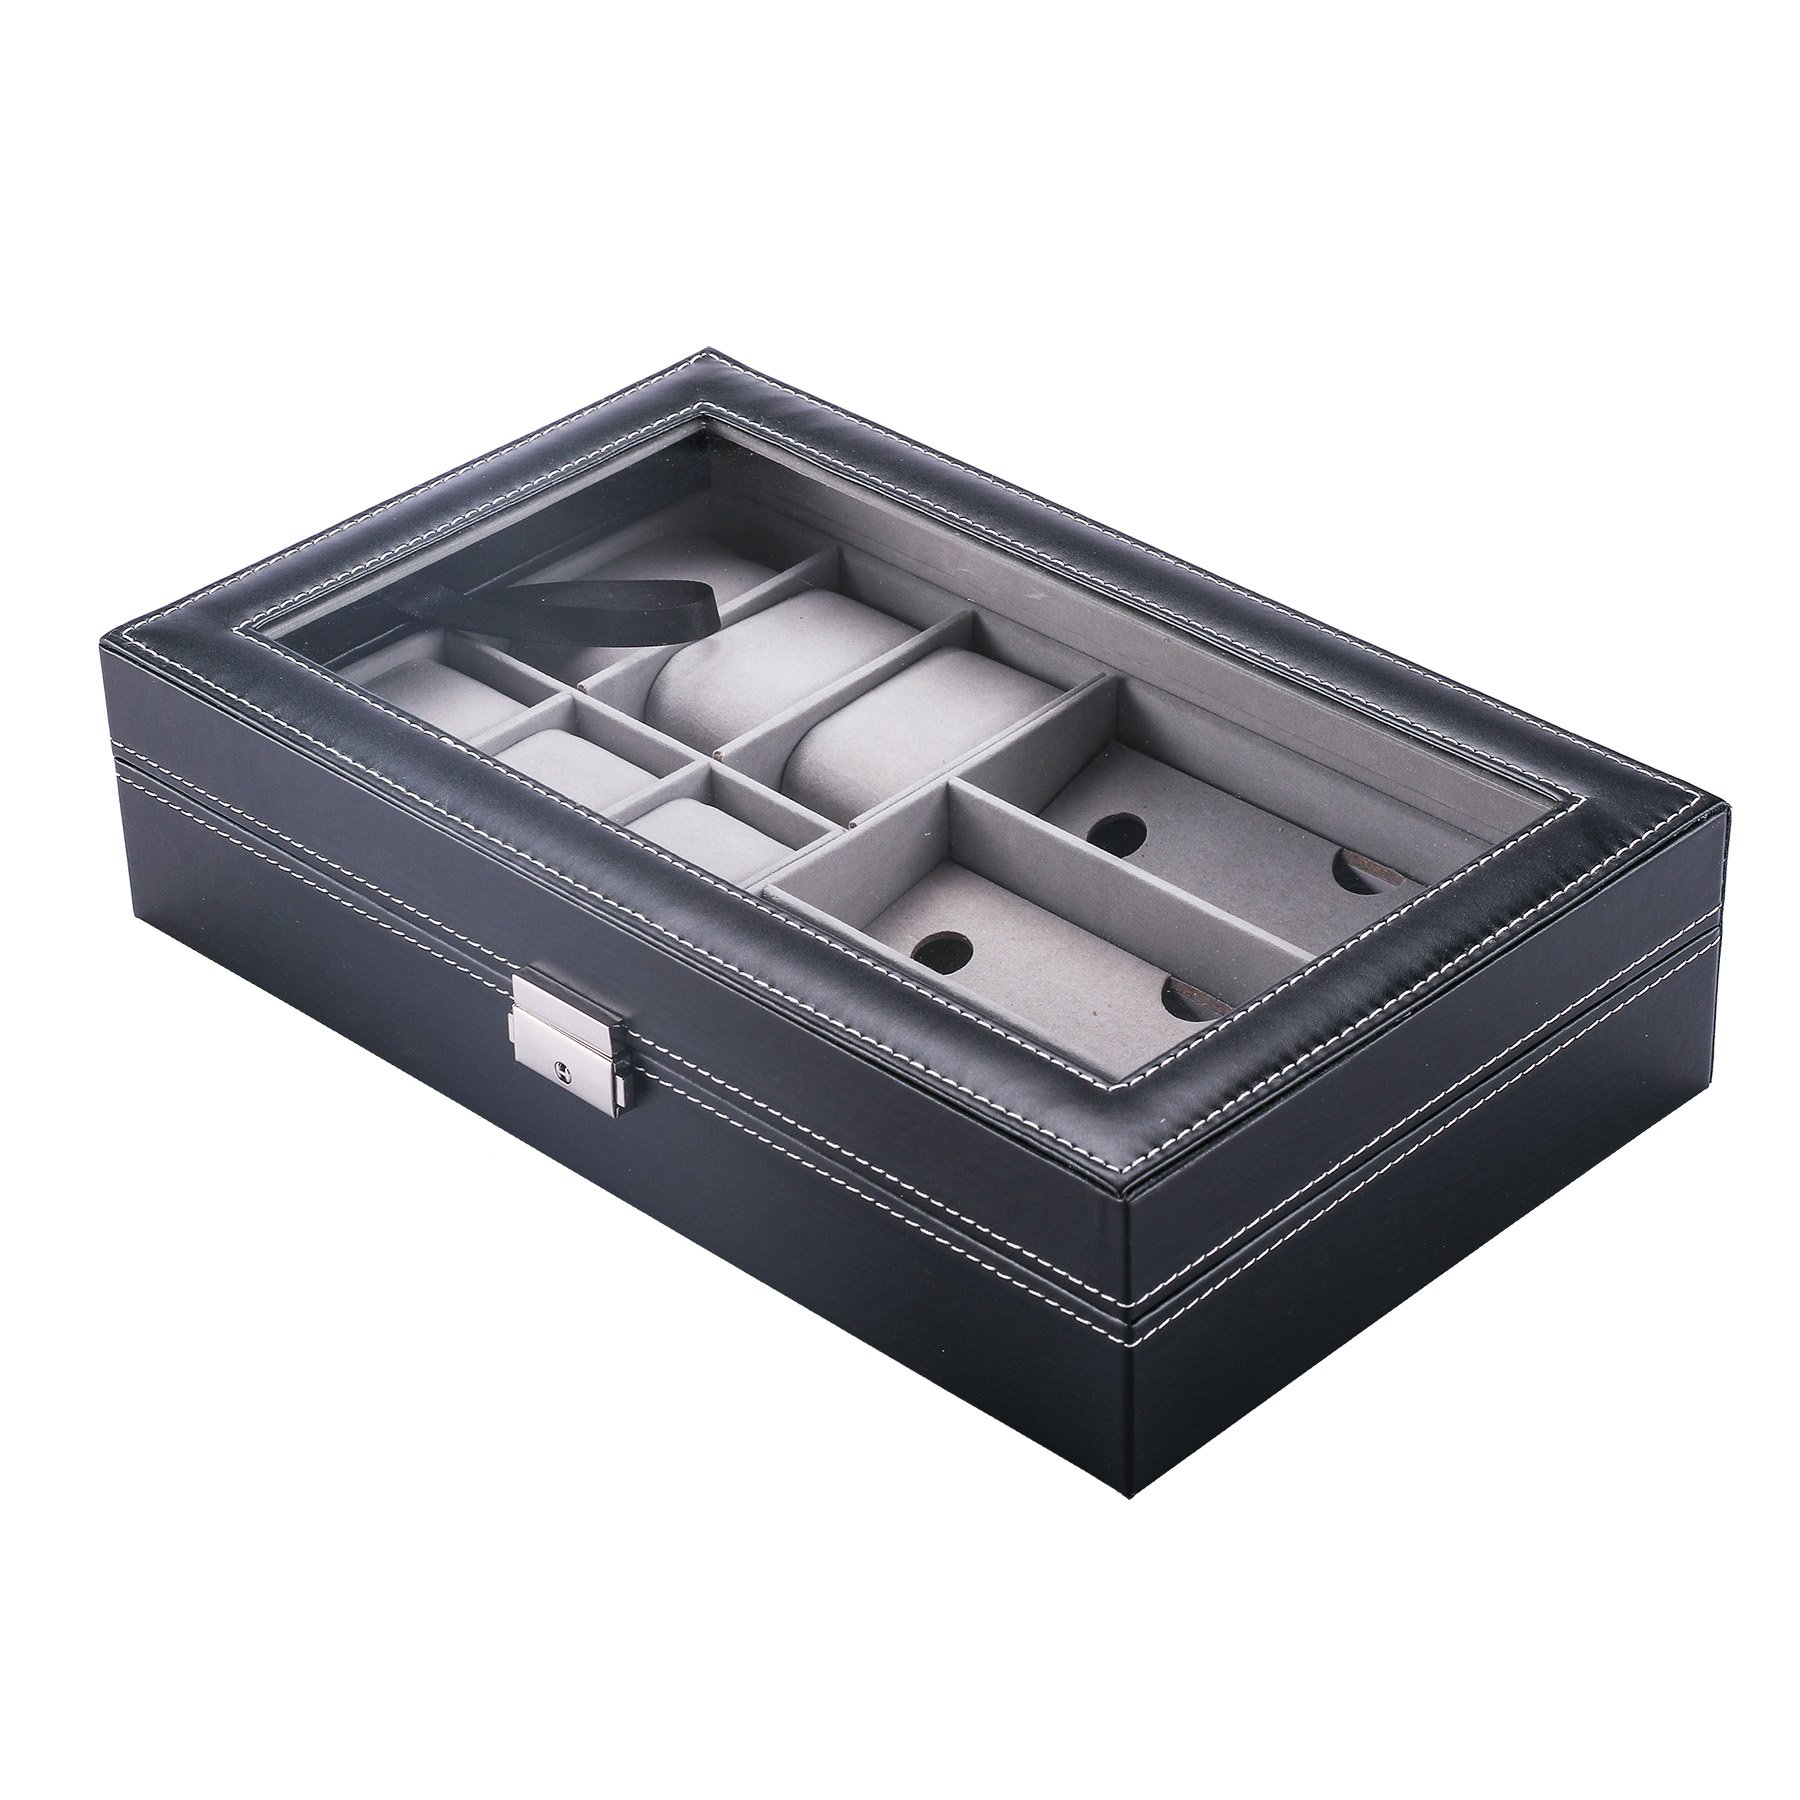 CO-Z Black Leather Display Box Jewelry Box Lockable Watch Case (9 Compartments, Watch + Sunglasses)